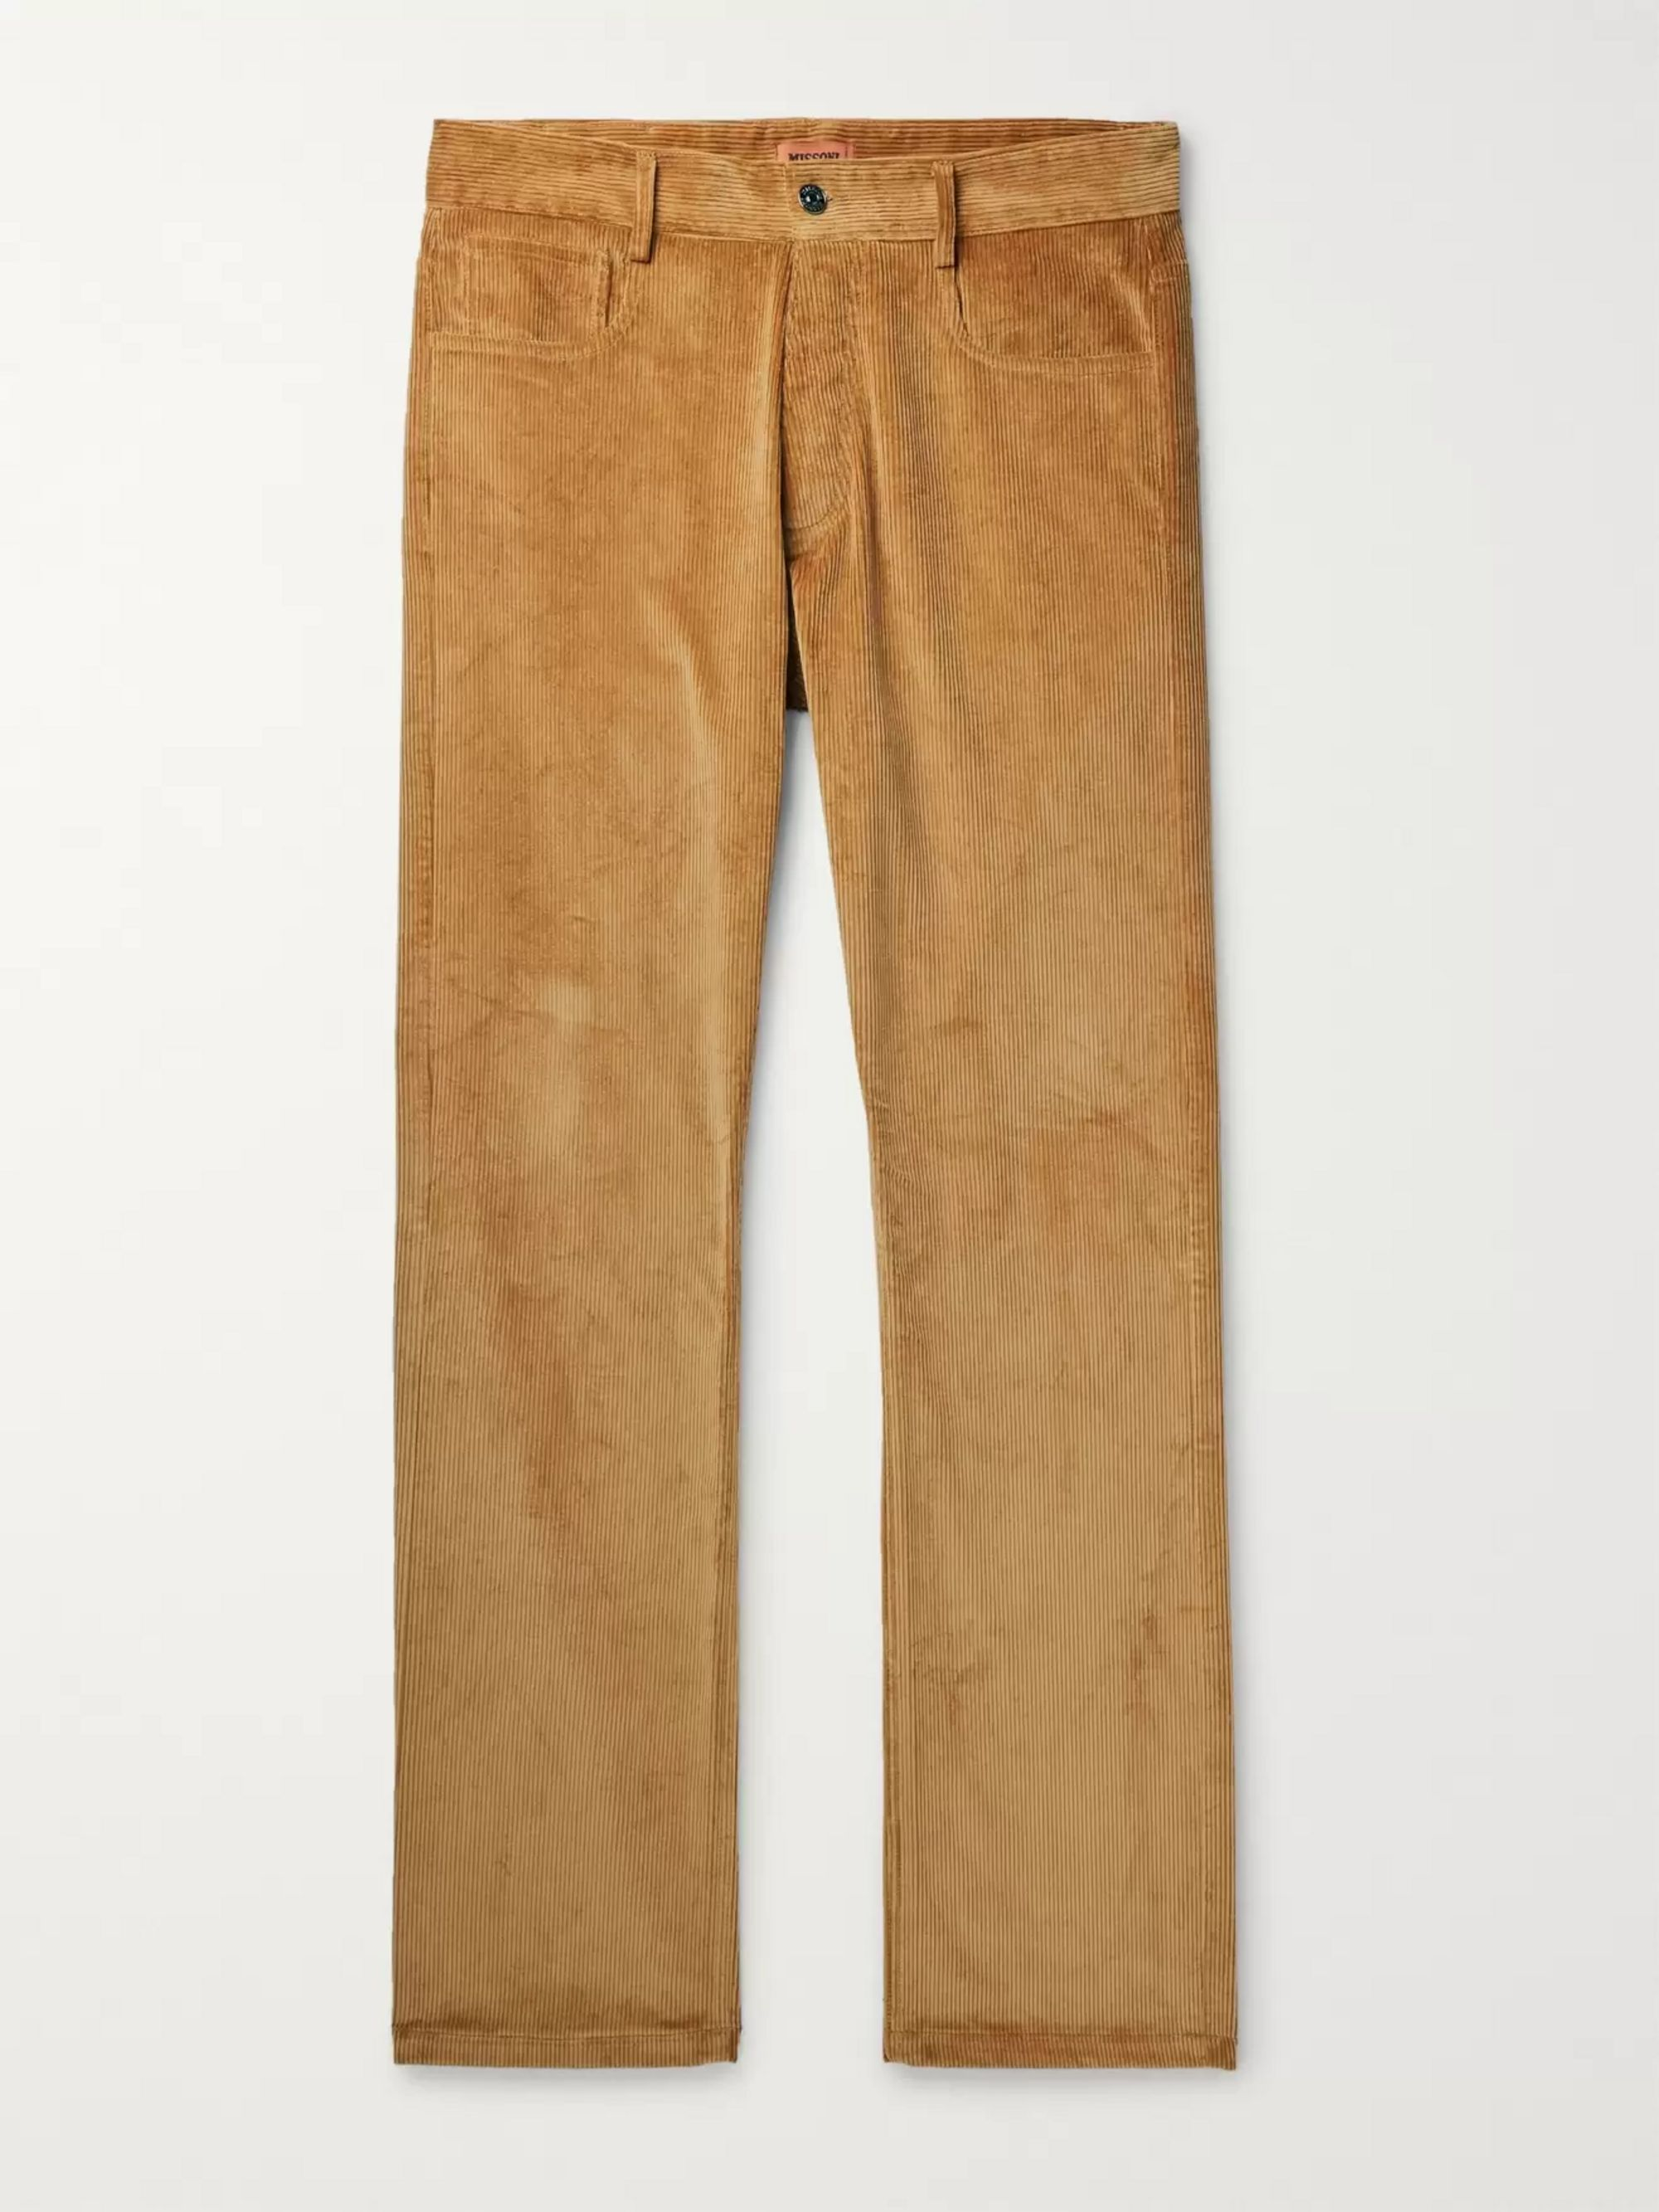 Missoni Cotton-Corduroy Trousers